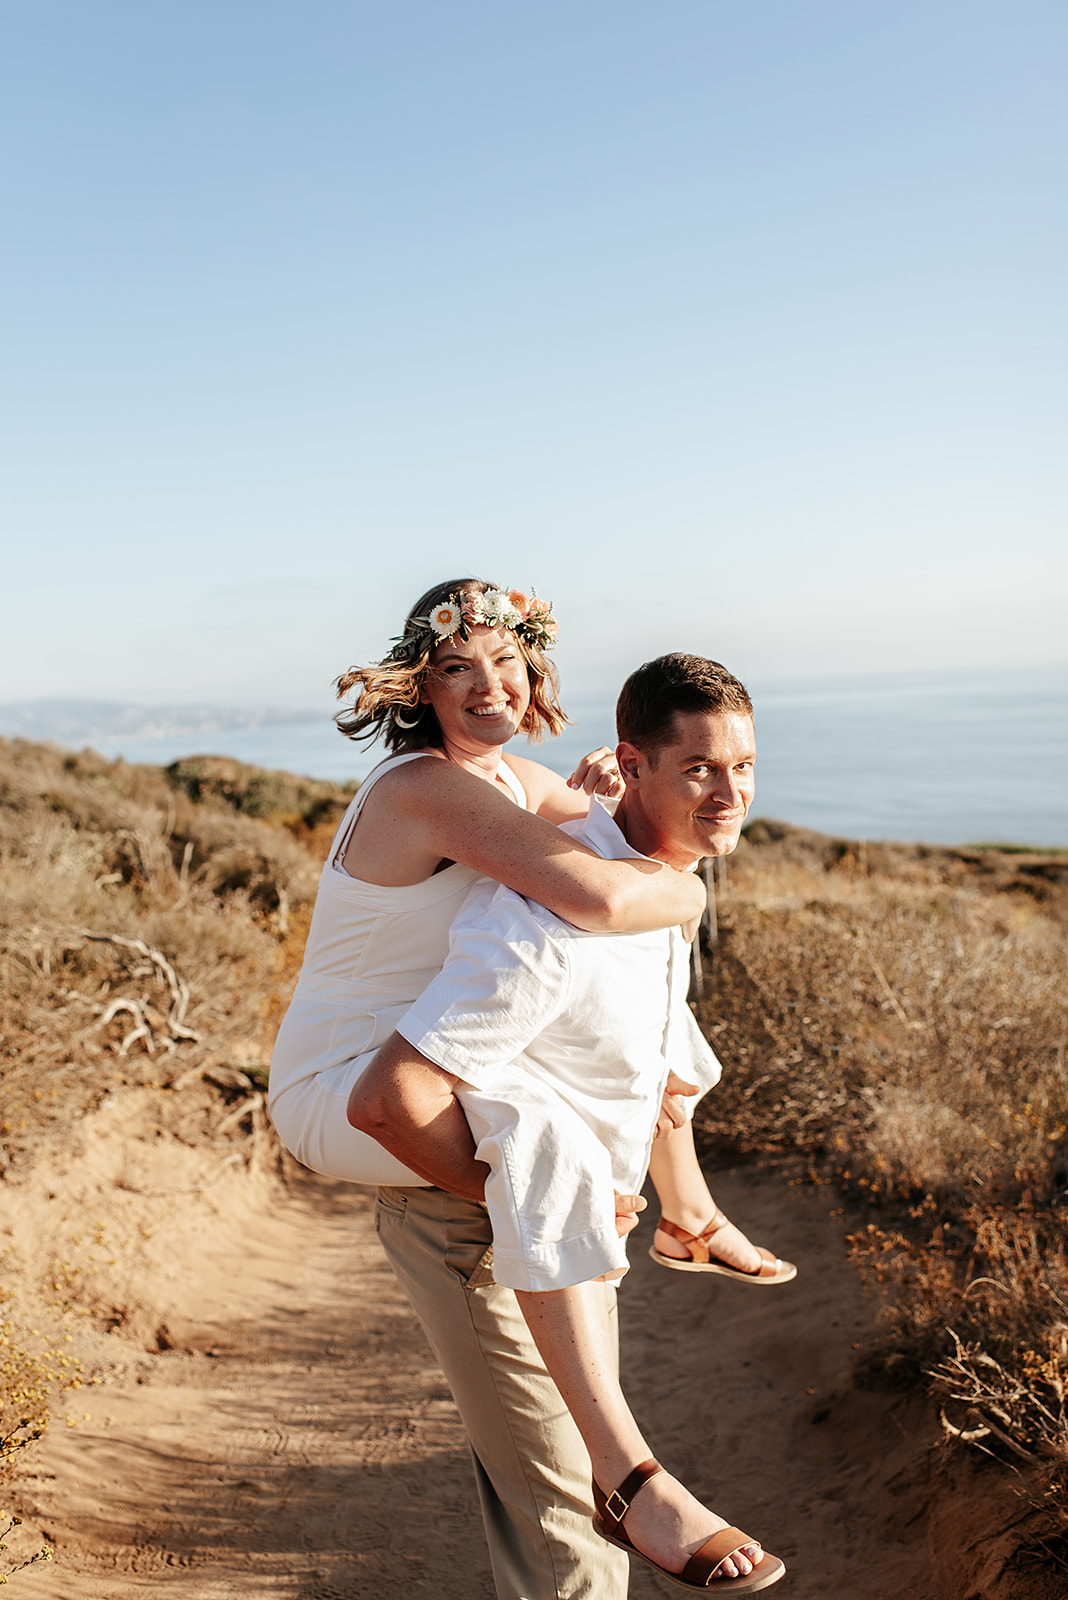 SoCal_Standard_-_San_Diego_Engagement_Photographer_-_Modern_Candid_Destination_Photographer_-_Engagement_Session_at_Torrey_Pines_San_Diego_California_-_Grace_and_Robert-43.jpg